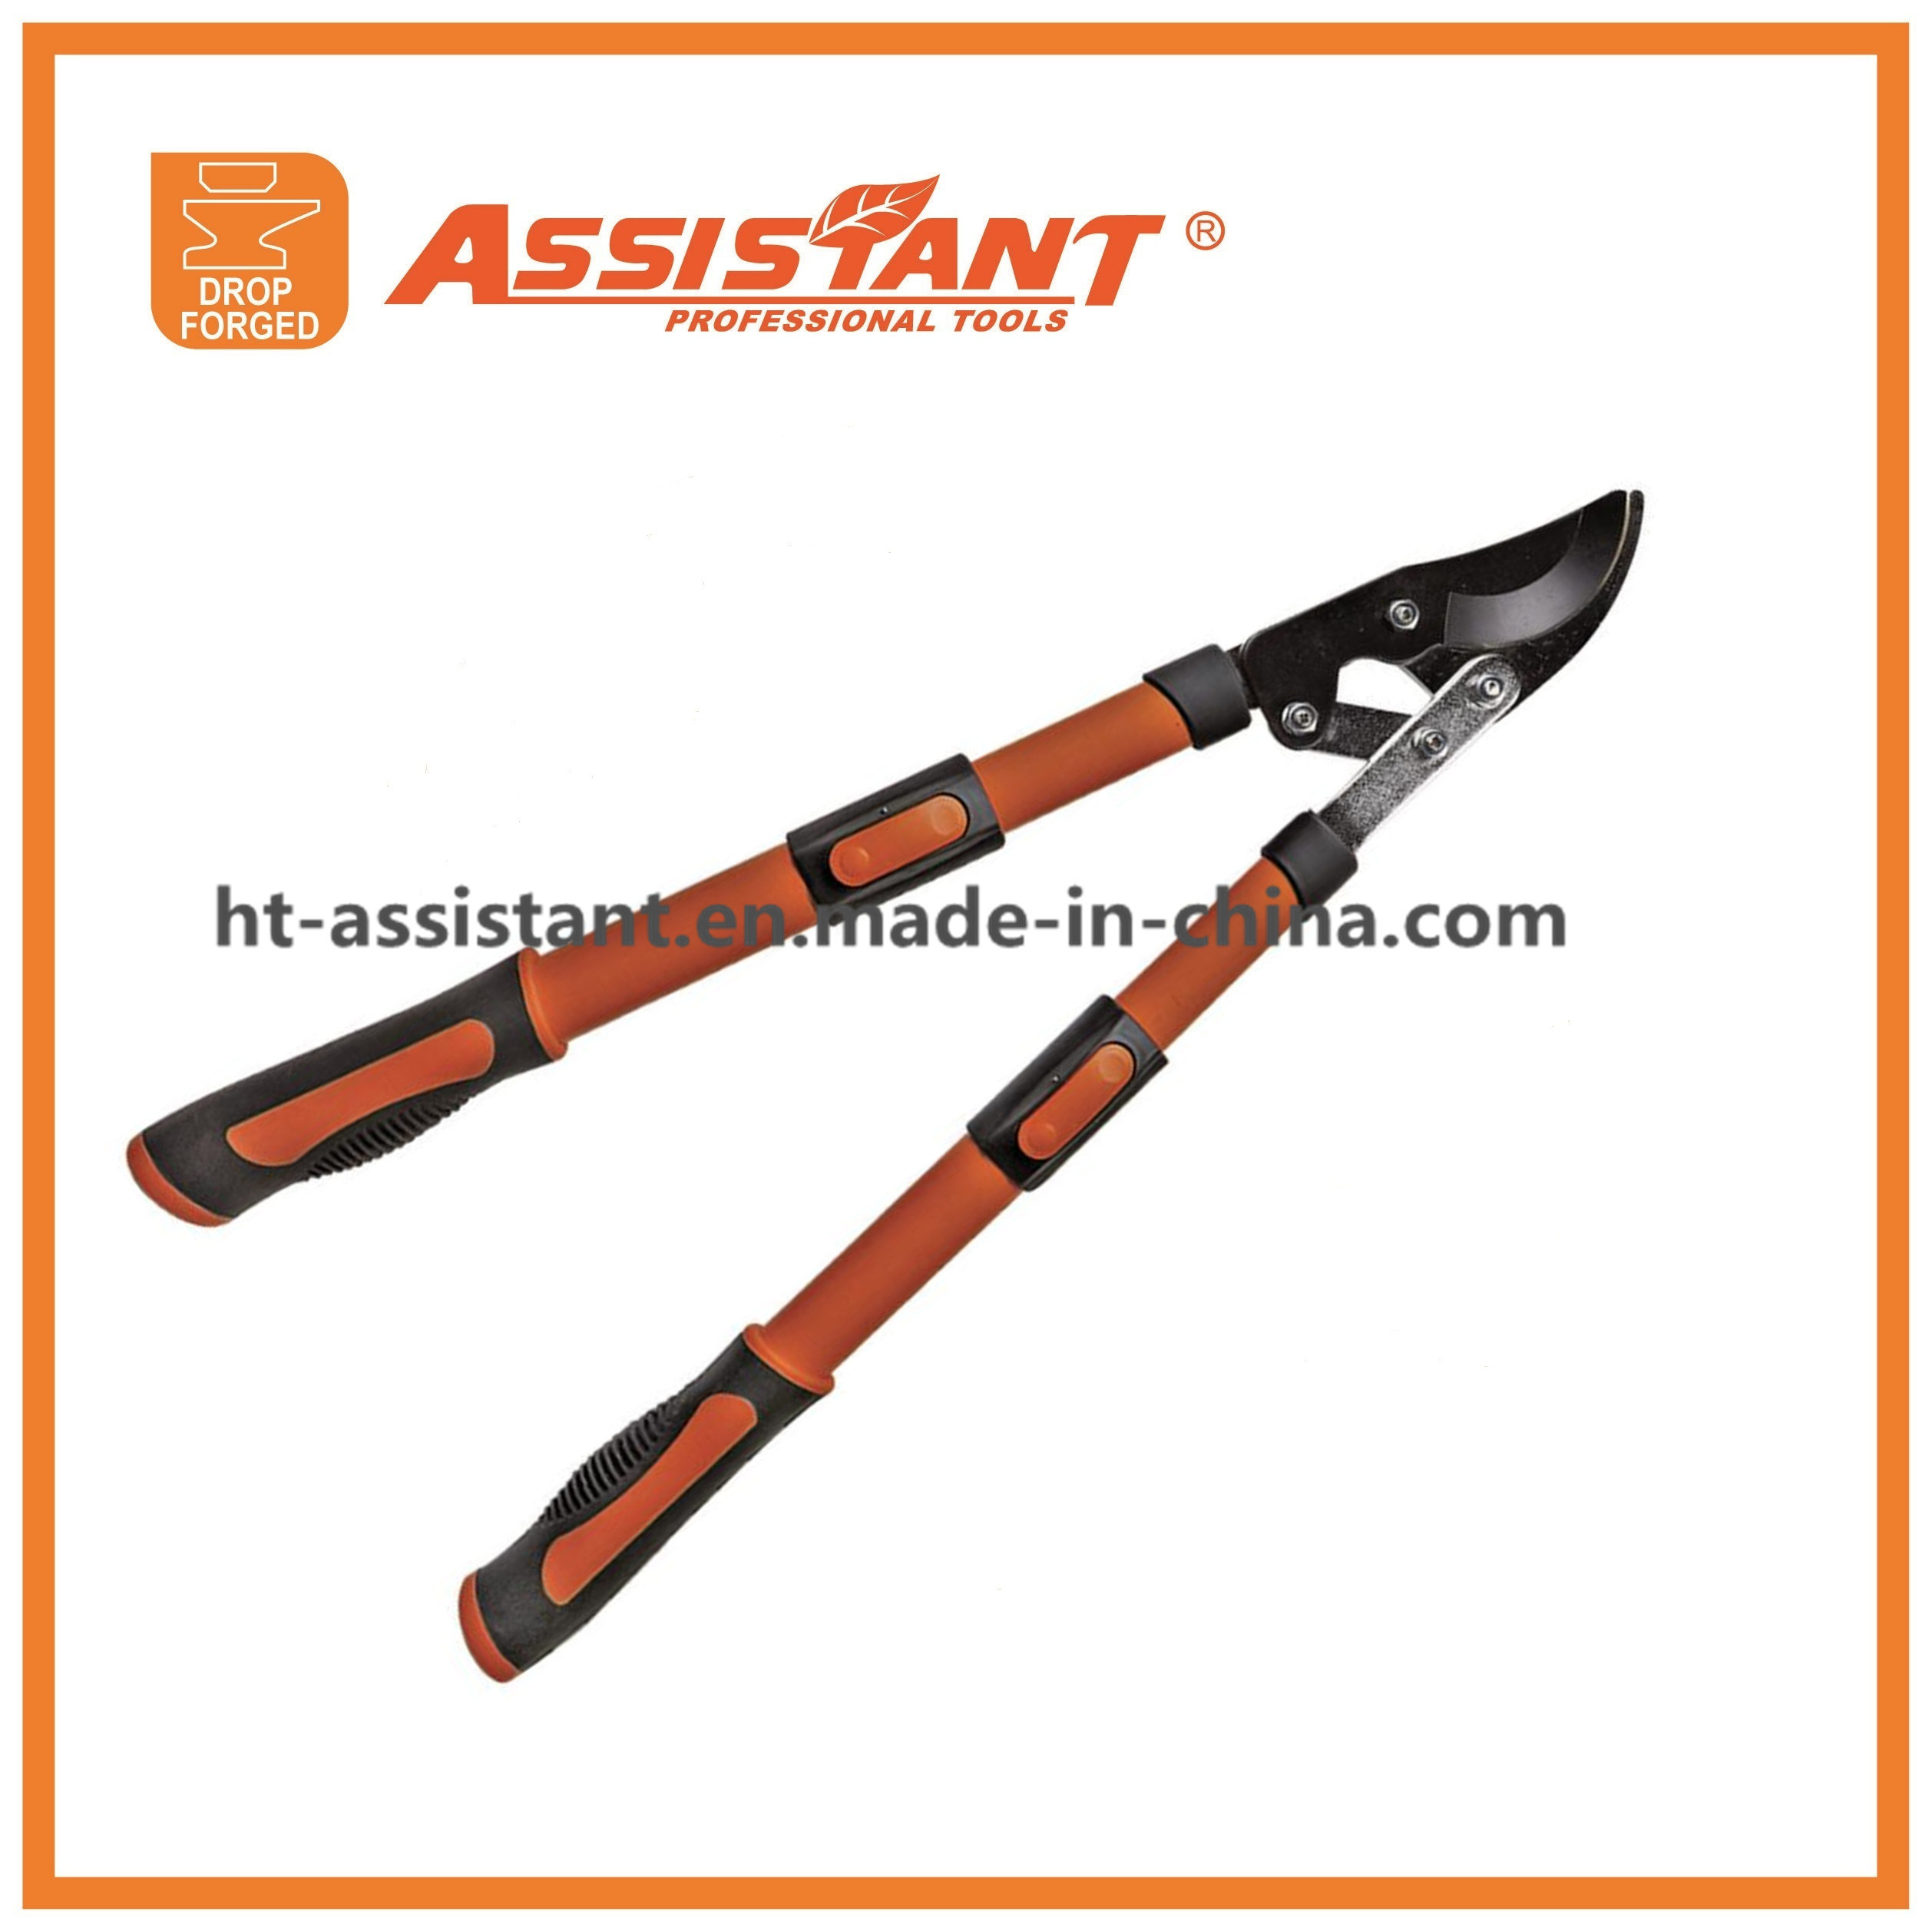 Easy Cut Forged Blade Bypass Loppers with Extendable Handles